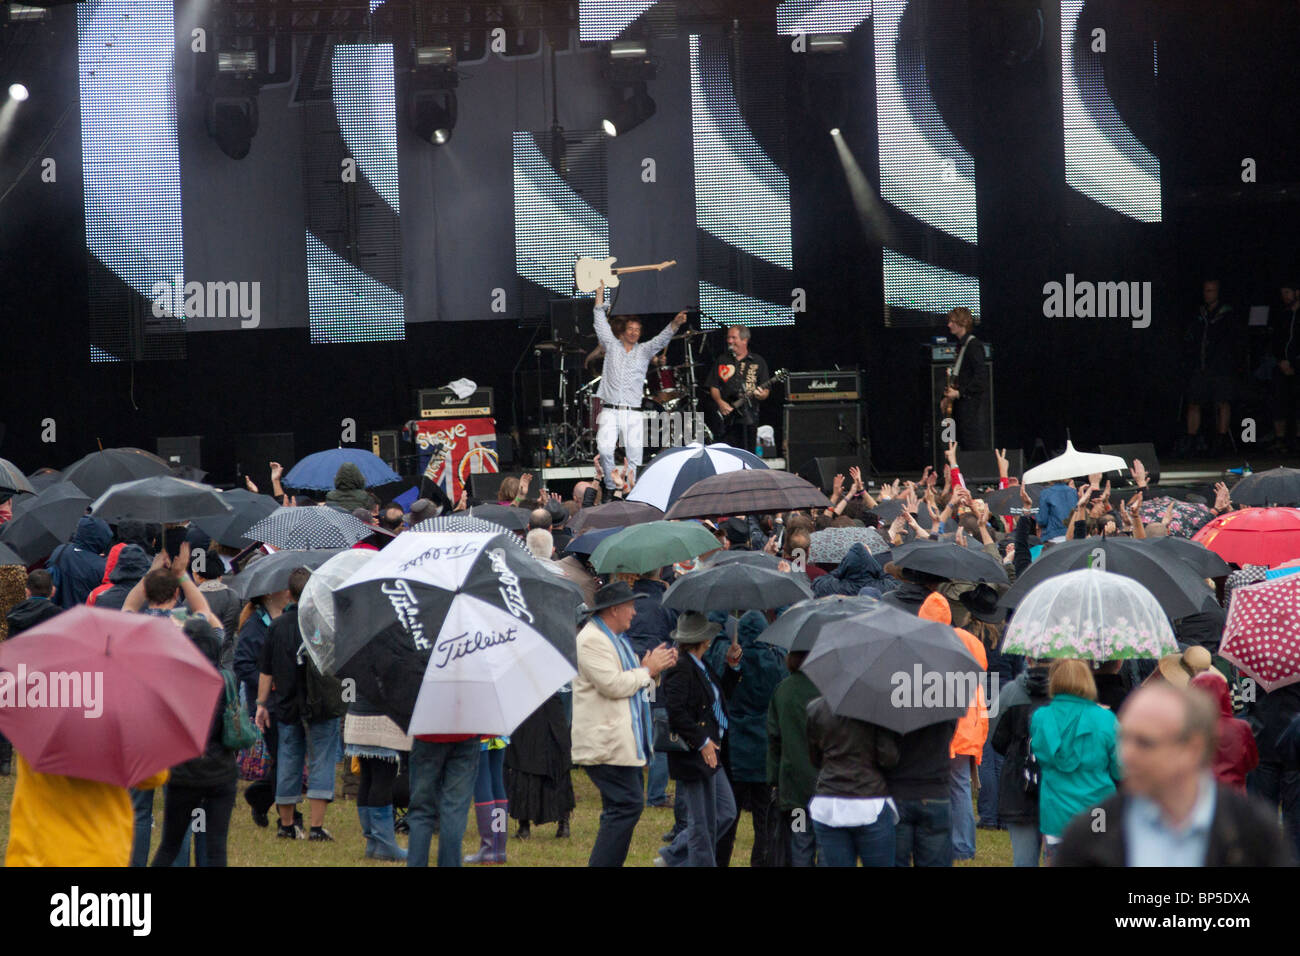 The Buzzcocks performing in front of an array of umbrellas at Vintage at Goodwood festival 2010 - Stock Image